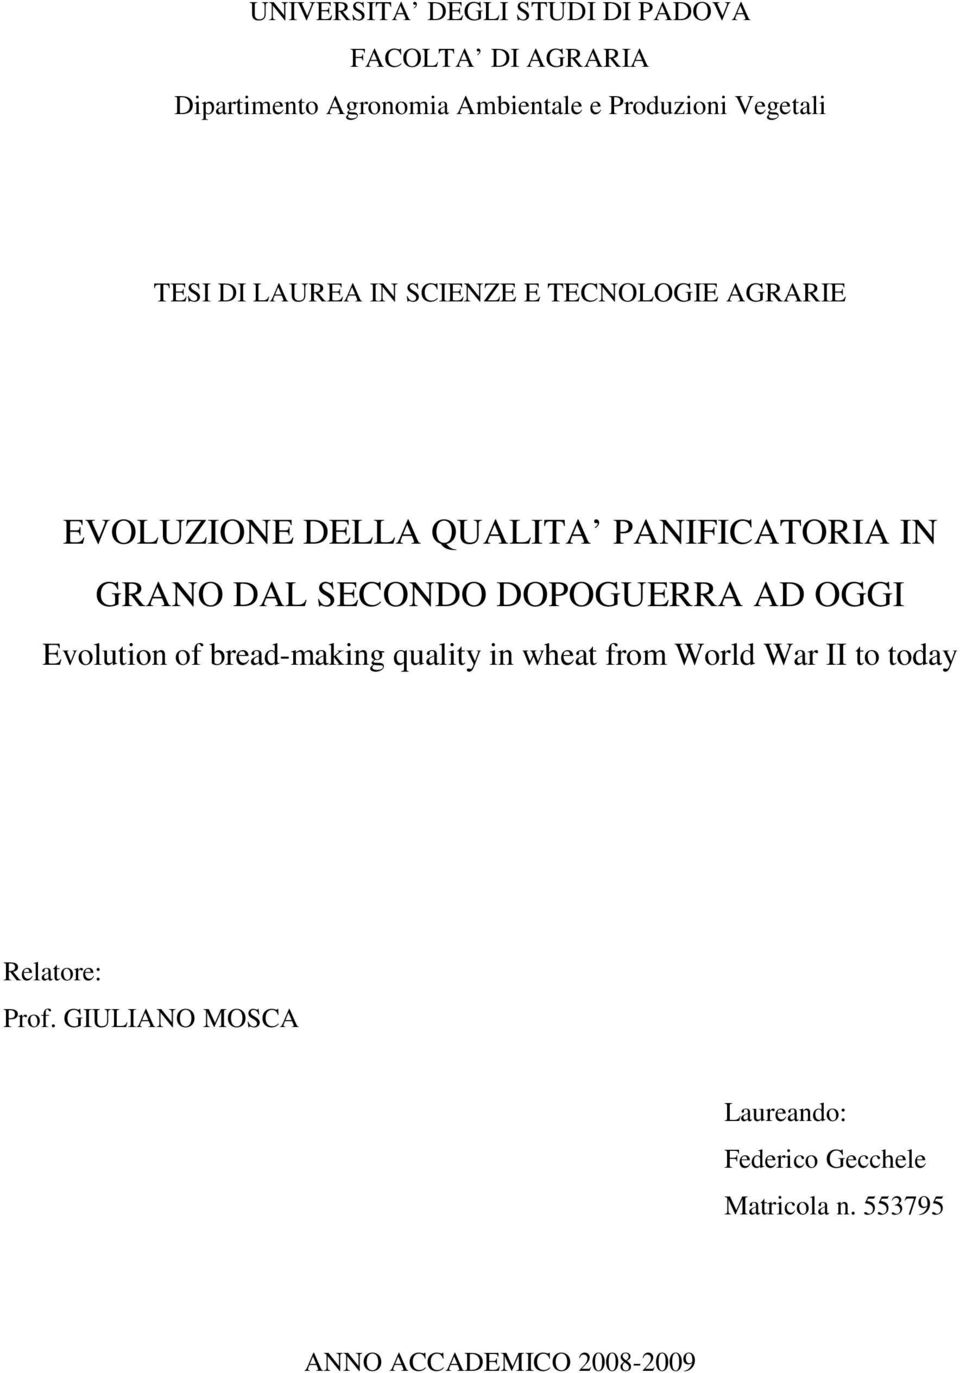 GRANO DAL SECONDO DOPOGUERRA AD OGGI Evolution of bread-making quality in wheat from World War II to